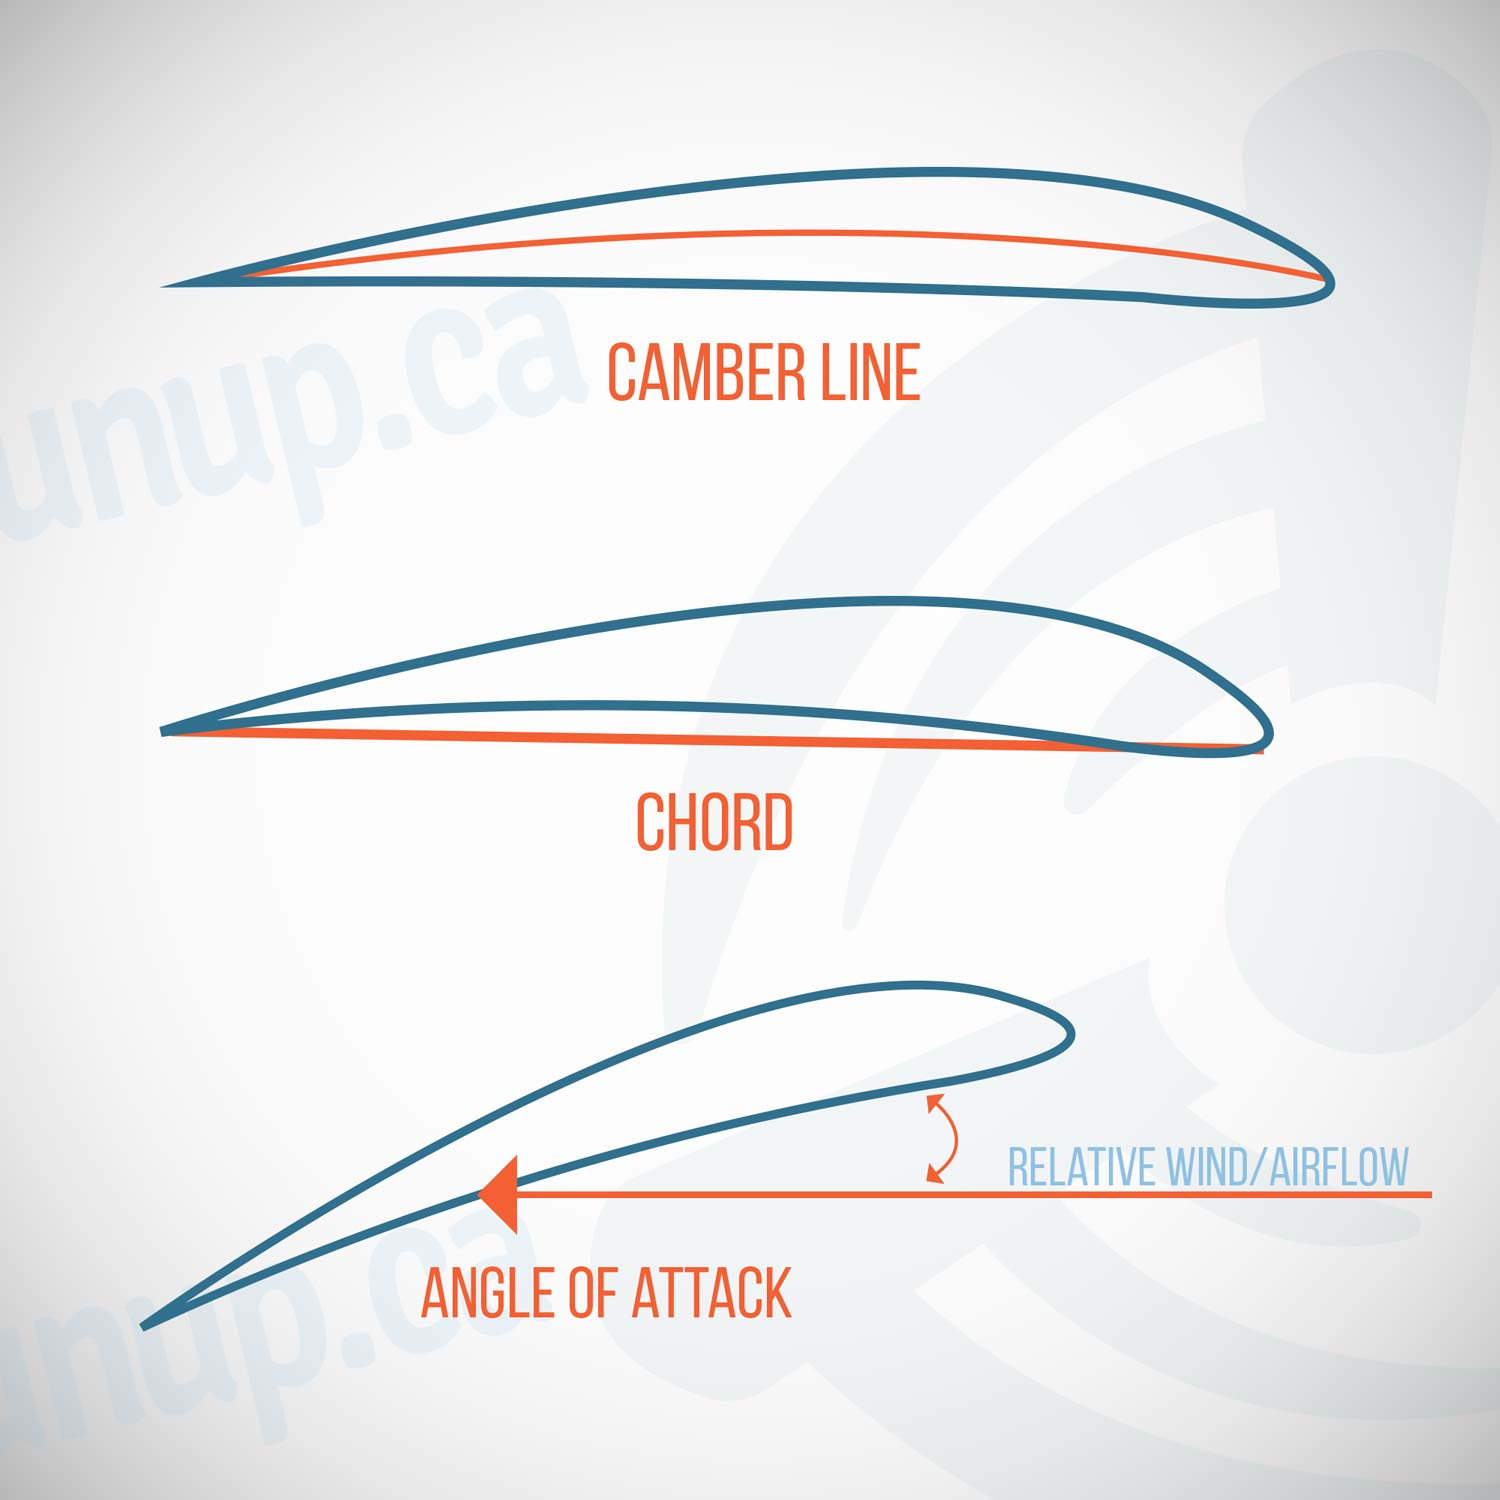 chord camber line angle of attack